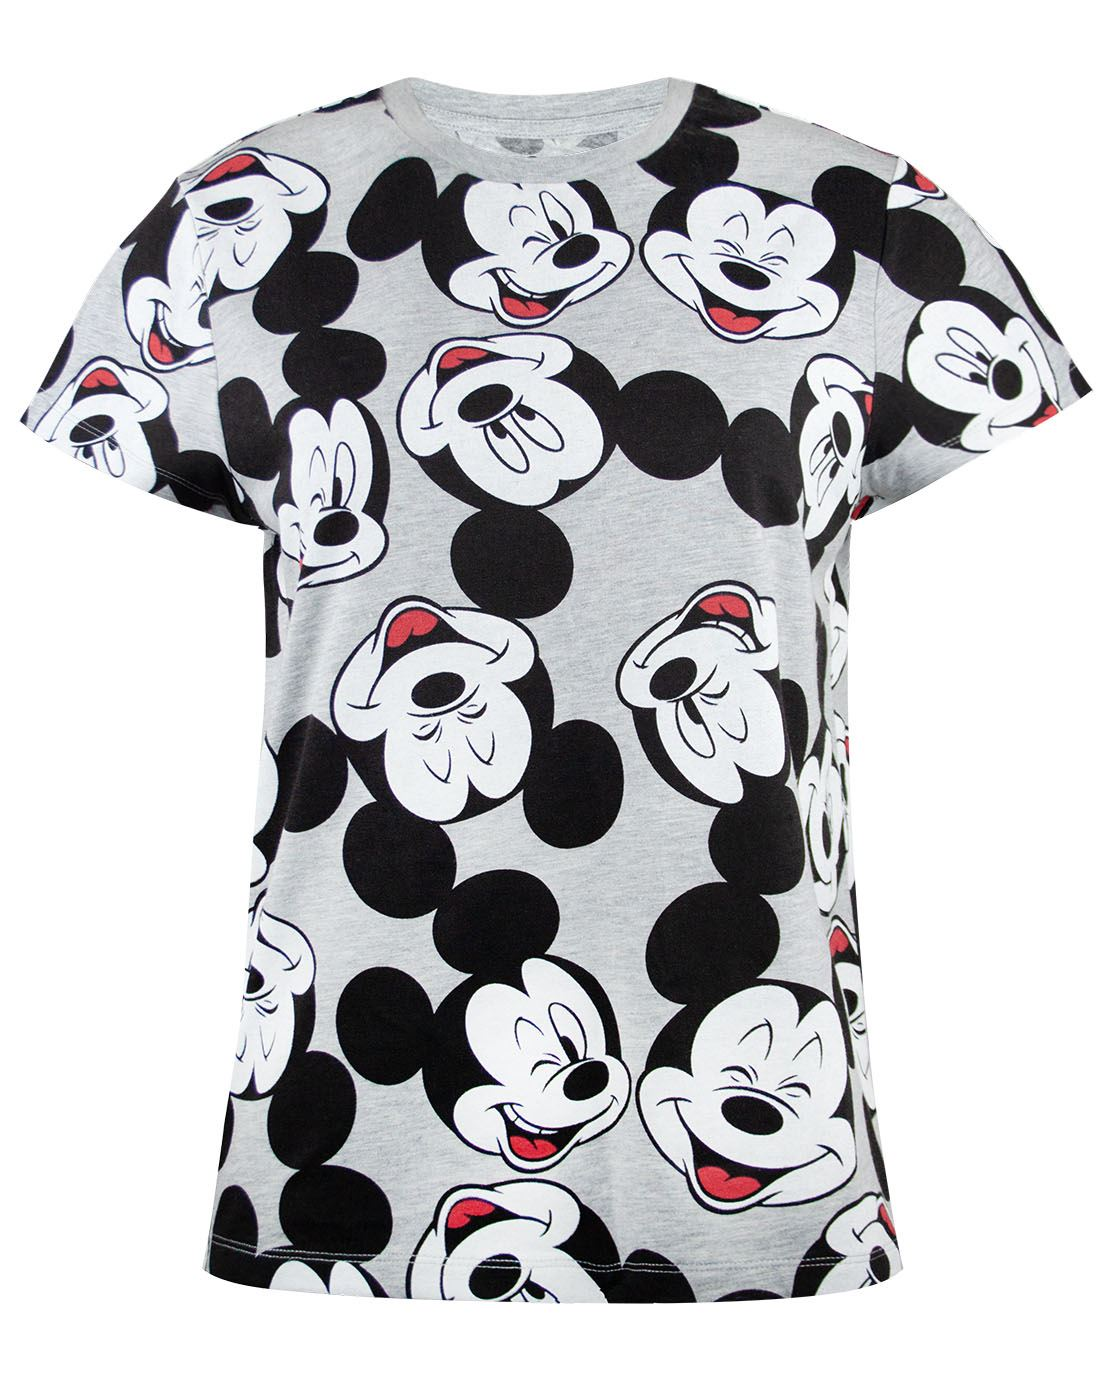 Disney-Mickey-Mouse-Character-All-Over-Women-039-s-Ladies-Boyfriend-Fit-T-Shirt